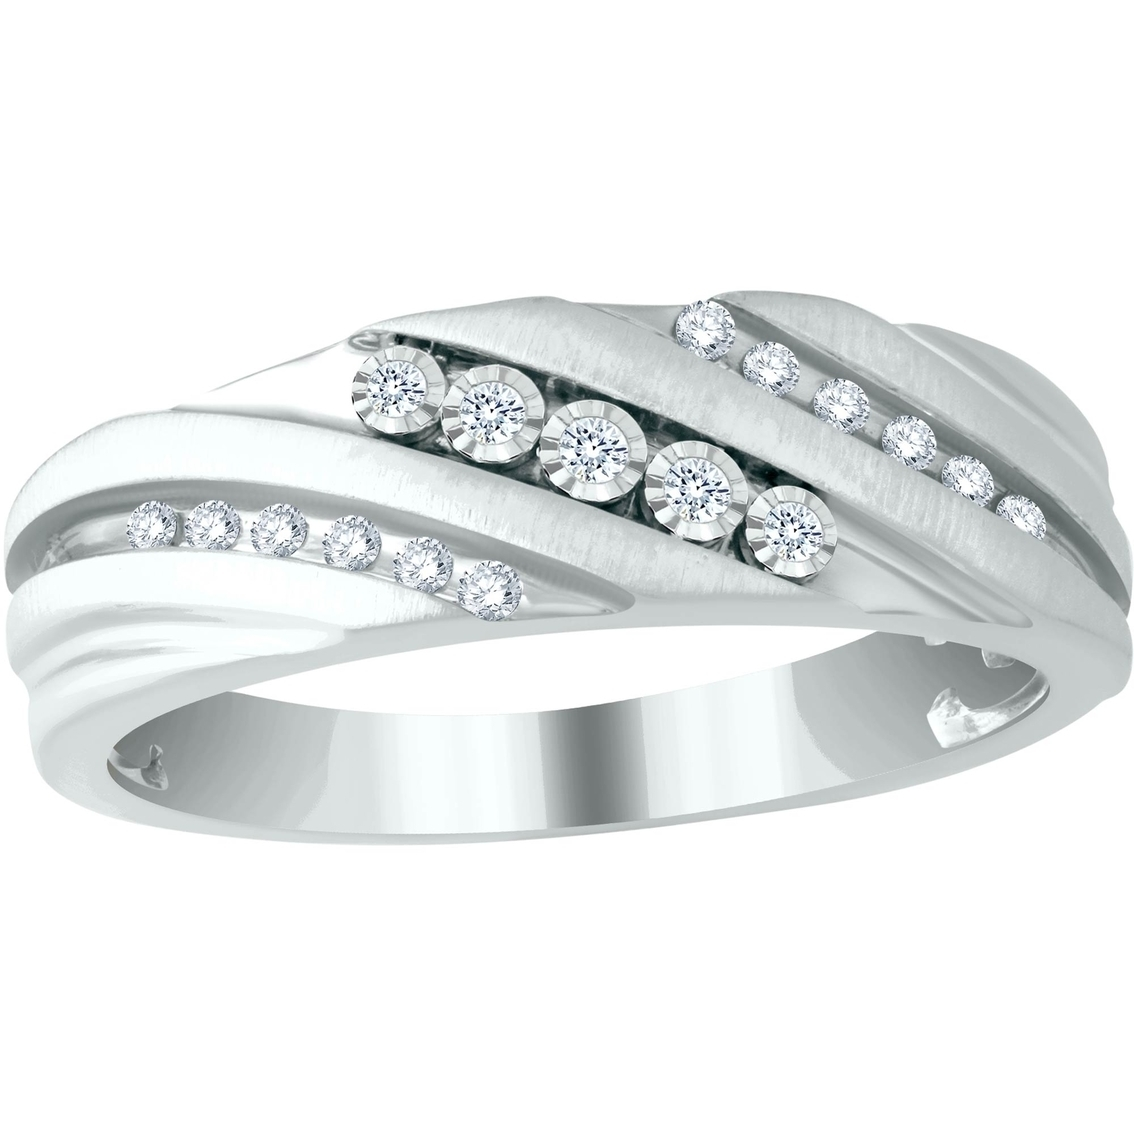 Expressions Of Love 10K White Gold 1/7 Ctw Diamond Slant Band, Size Intended For Most Up To Date Diamond Three Stone Slant Wedding Bands In 10K White Gold (View 5 of 15)